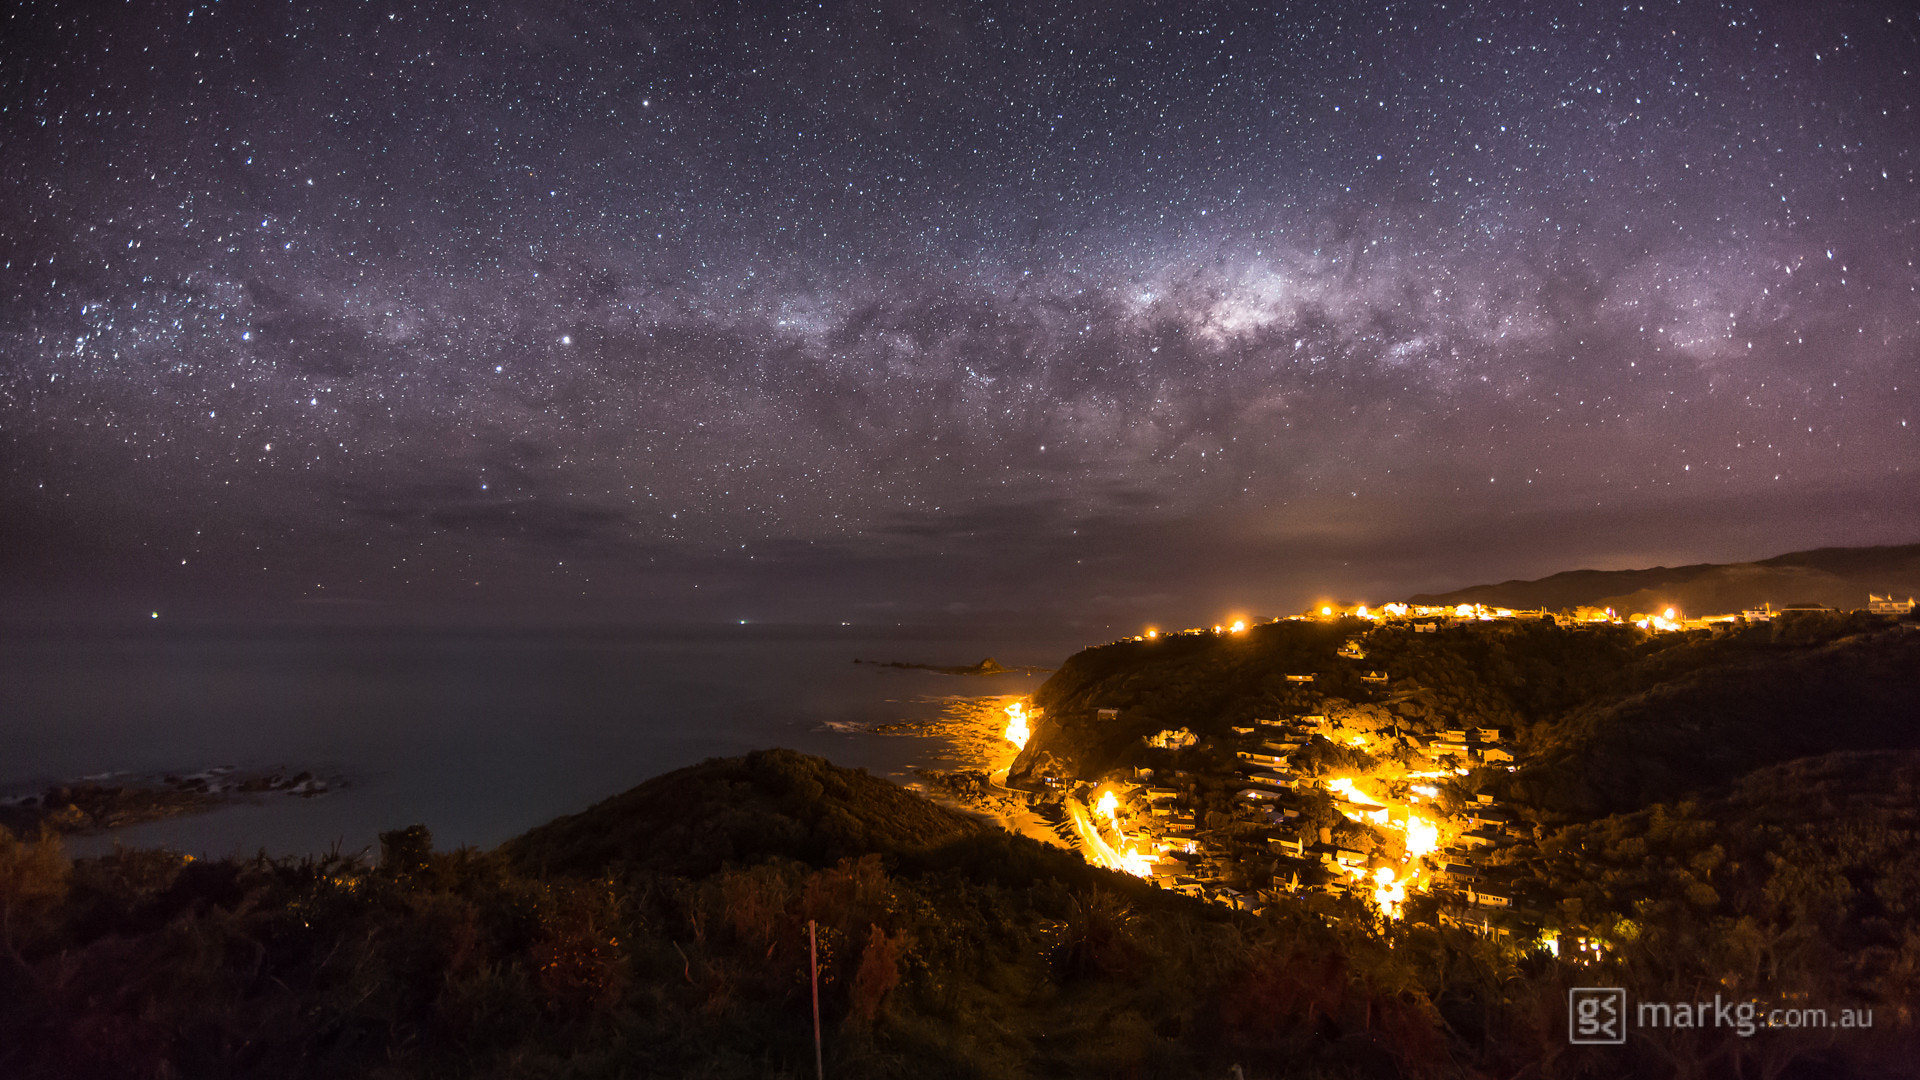 Photograph Milky Way Above the Wellington South Coast by Mark Gee on 500px